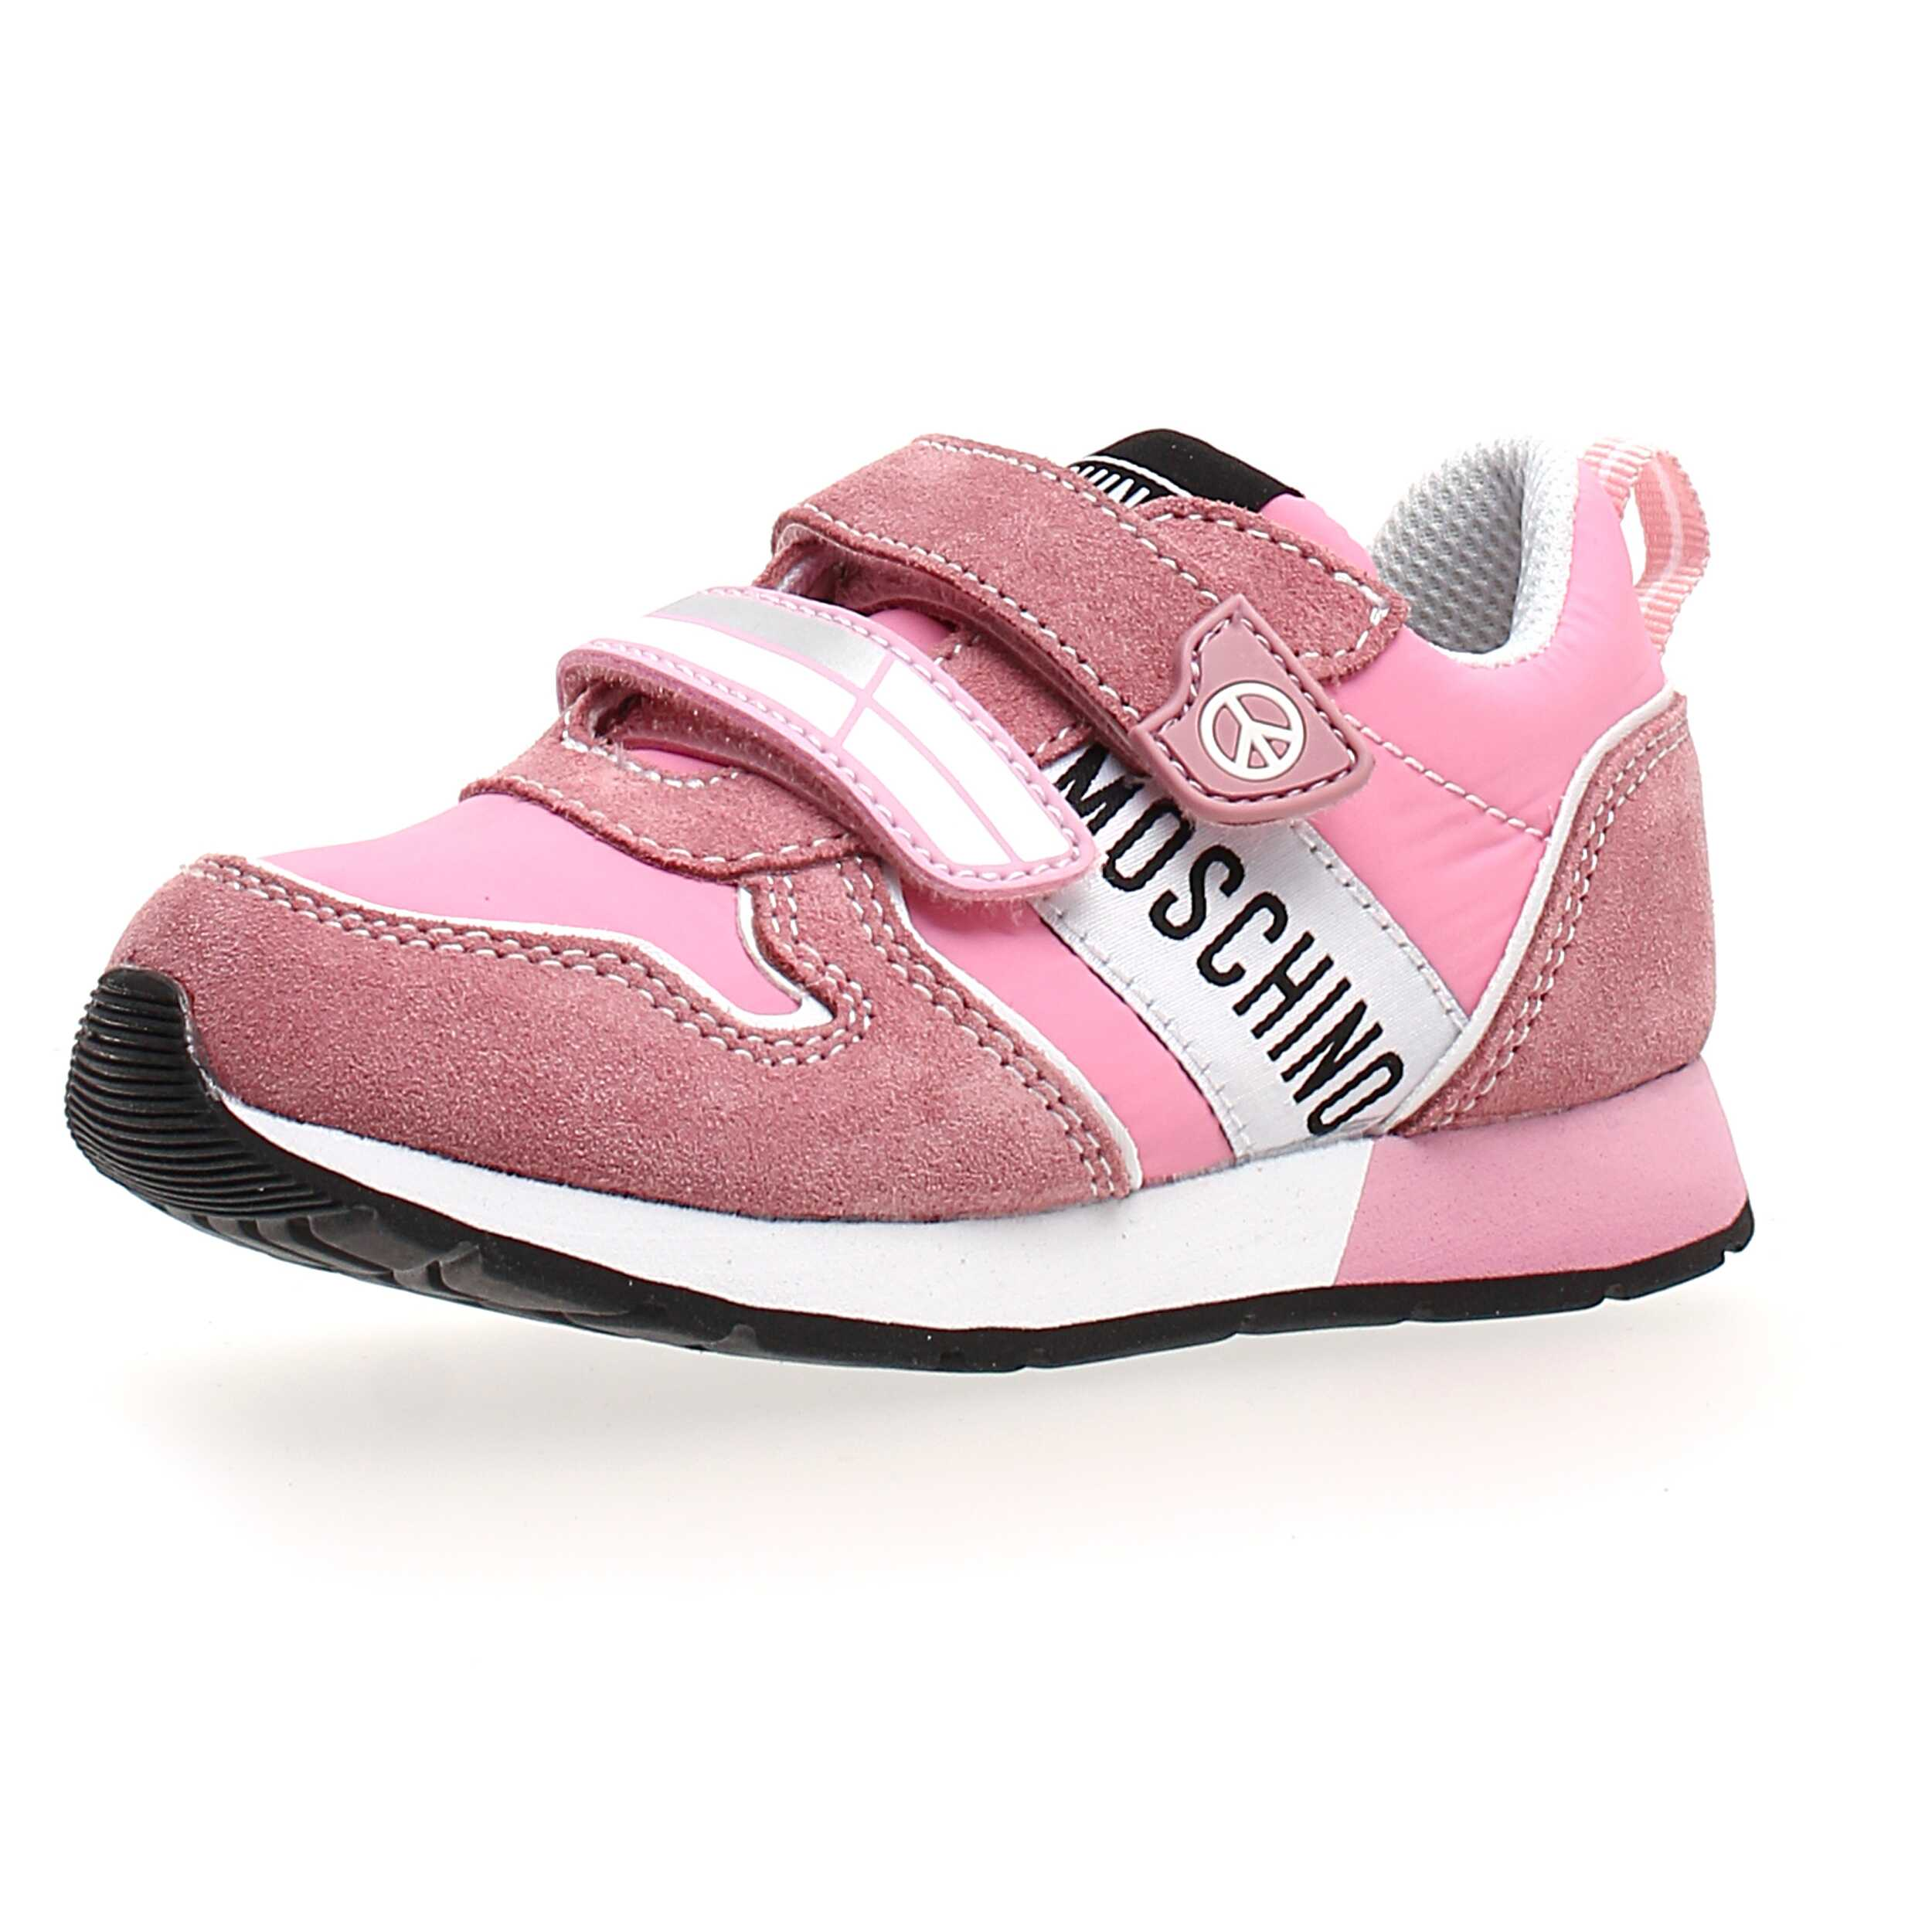 *FINAL SALE* Moschino 26325 - Rosa